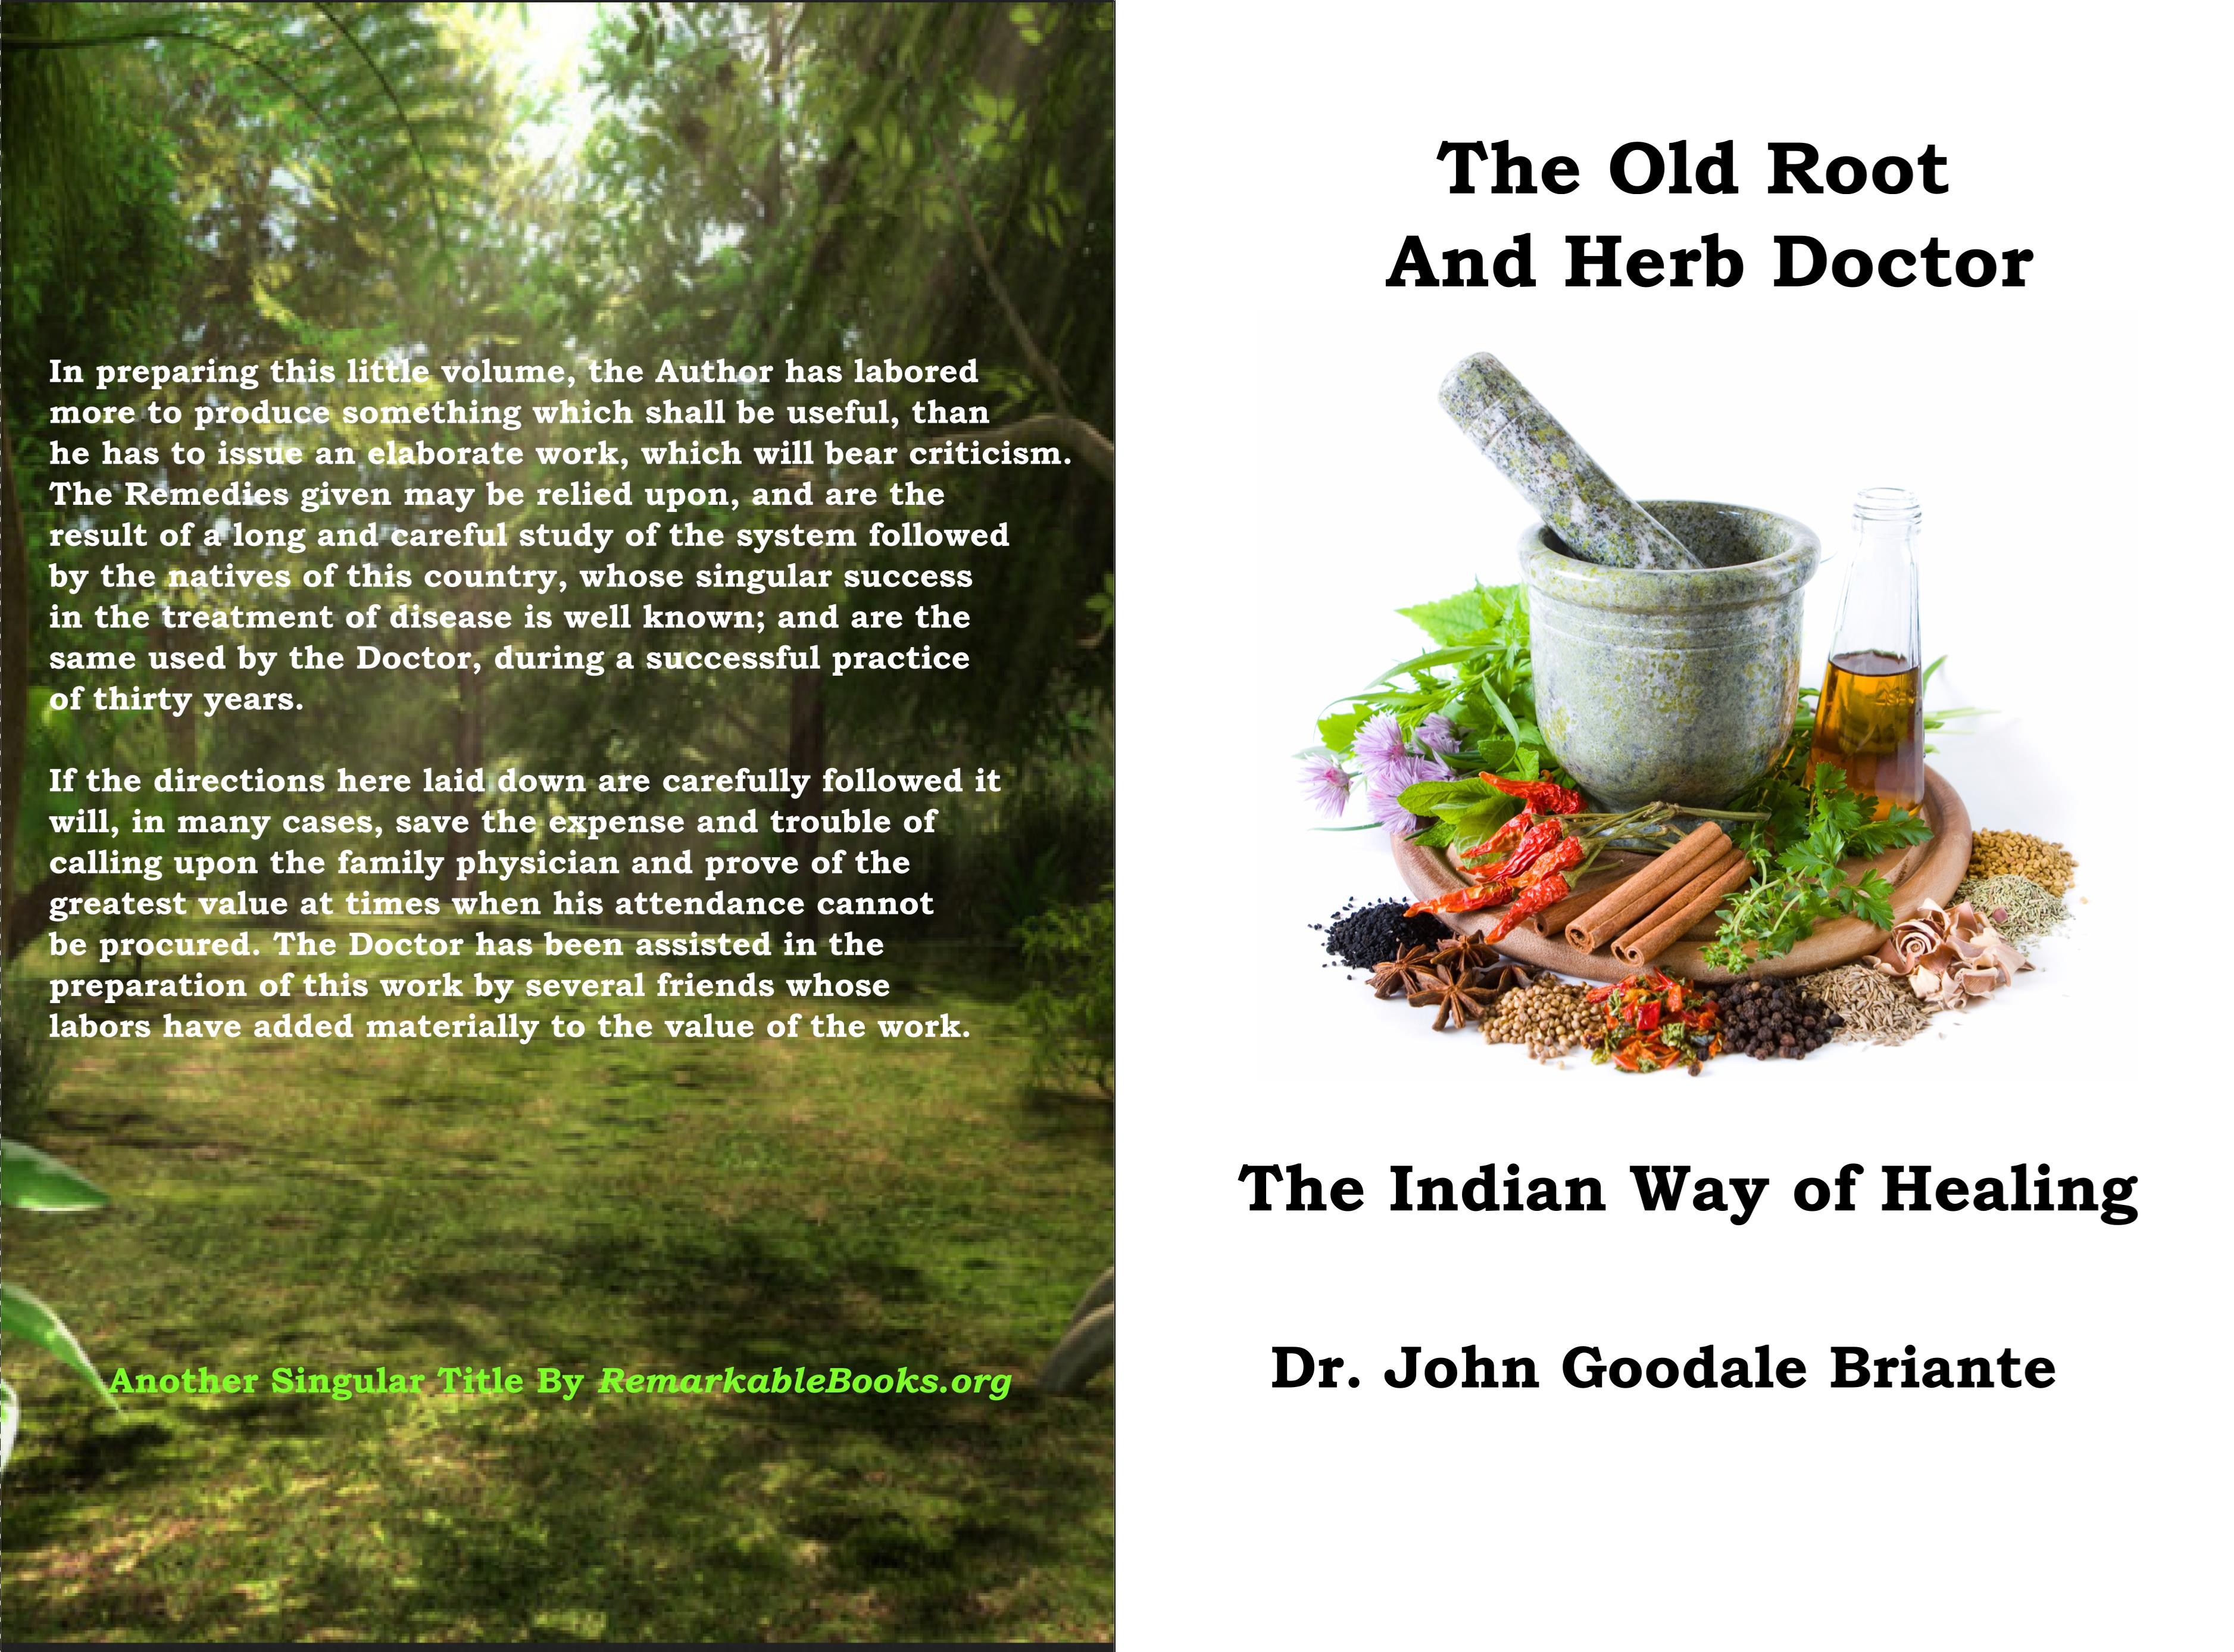 The Old Root and Herb Doctor cover image